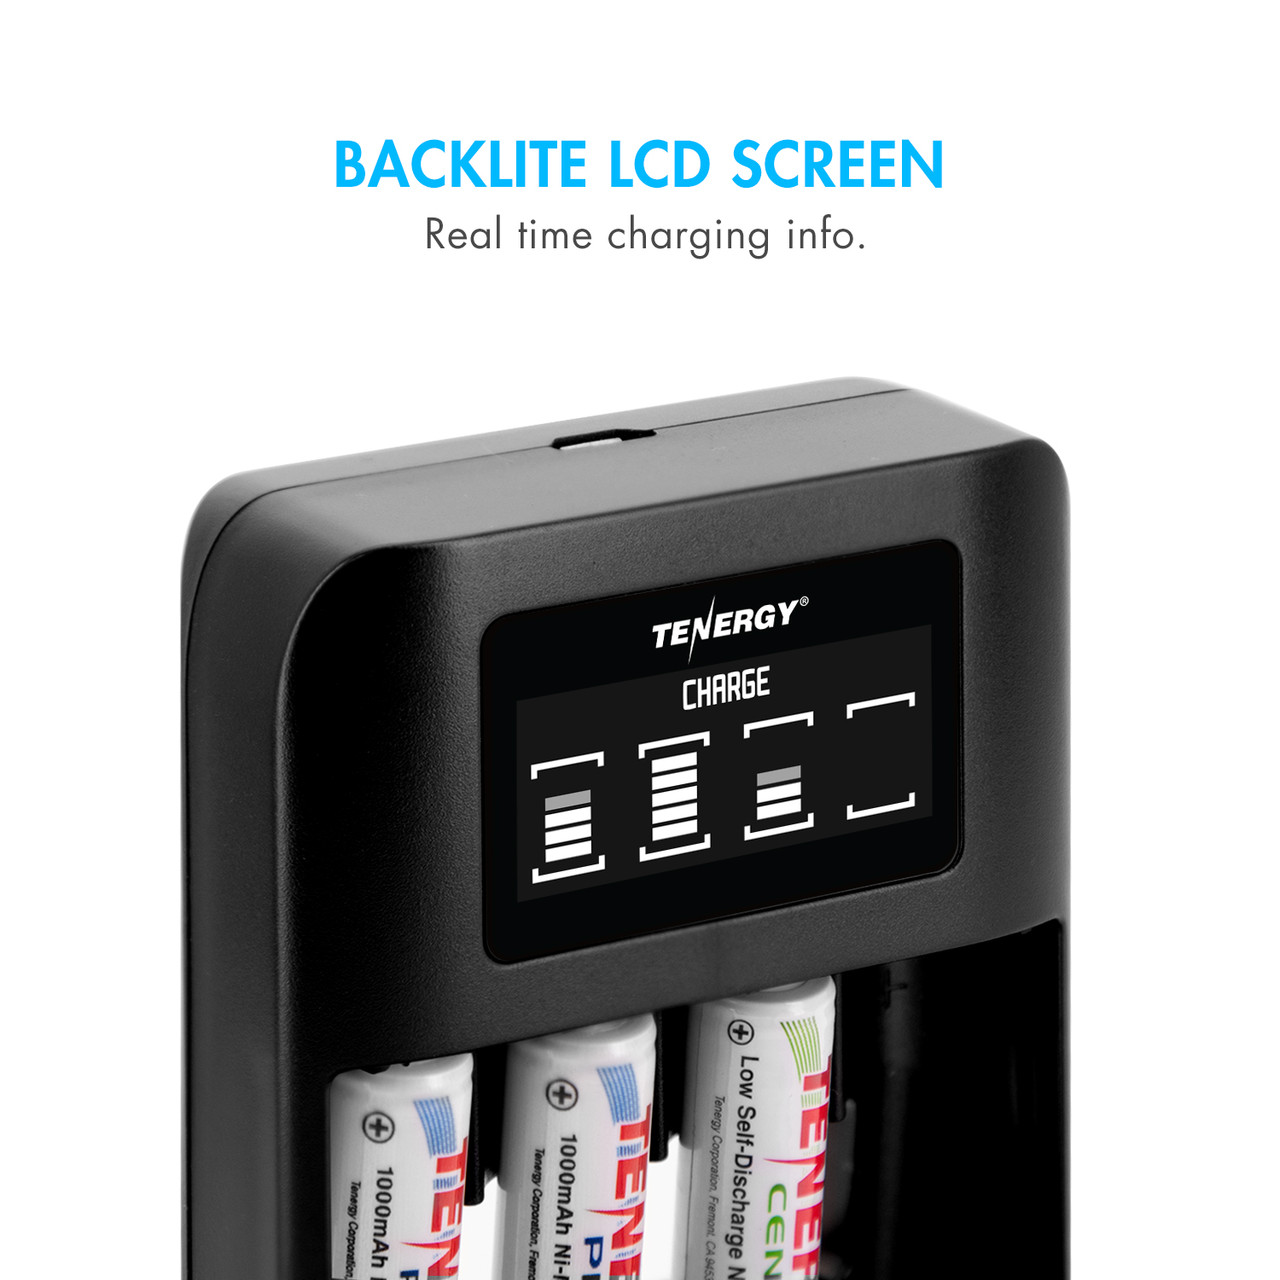 Tenergy TN474U 4-Bay NiMH Battery Charger with LCD Display and USB input